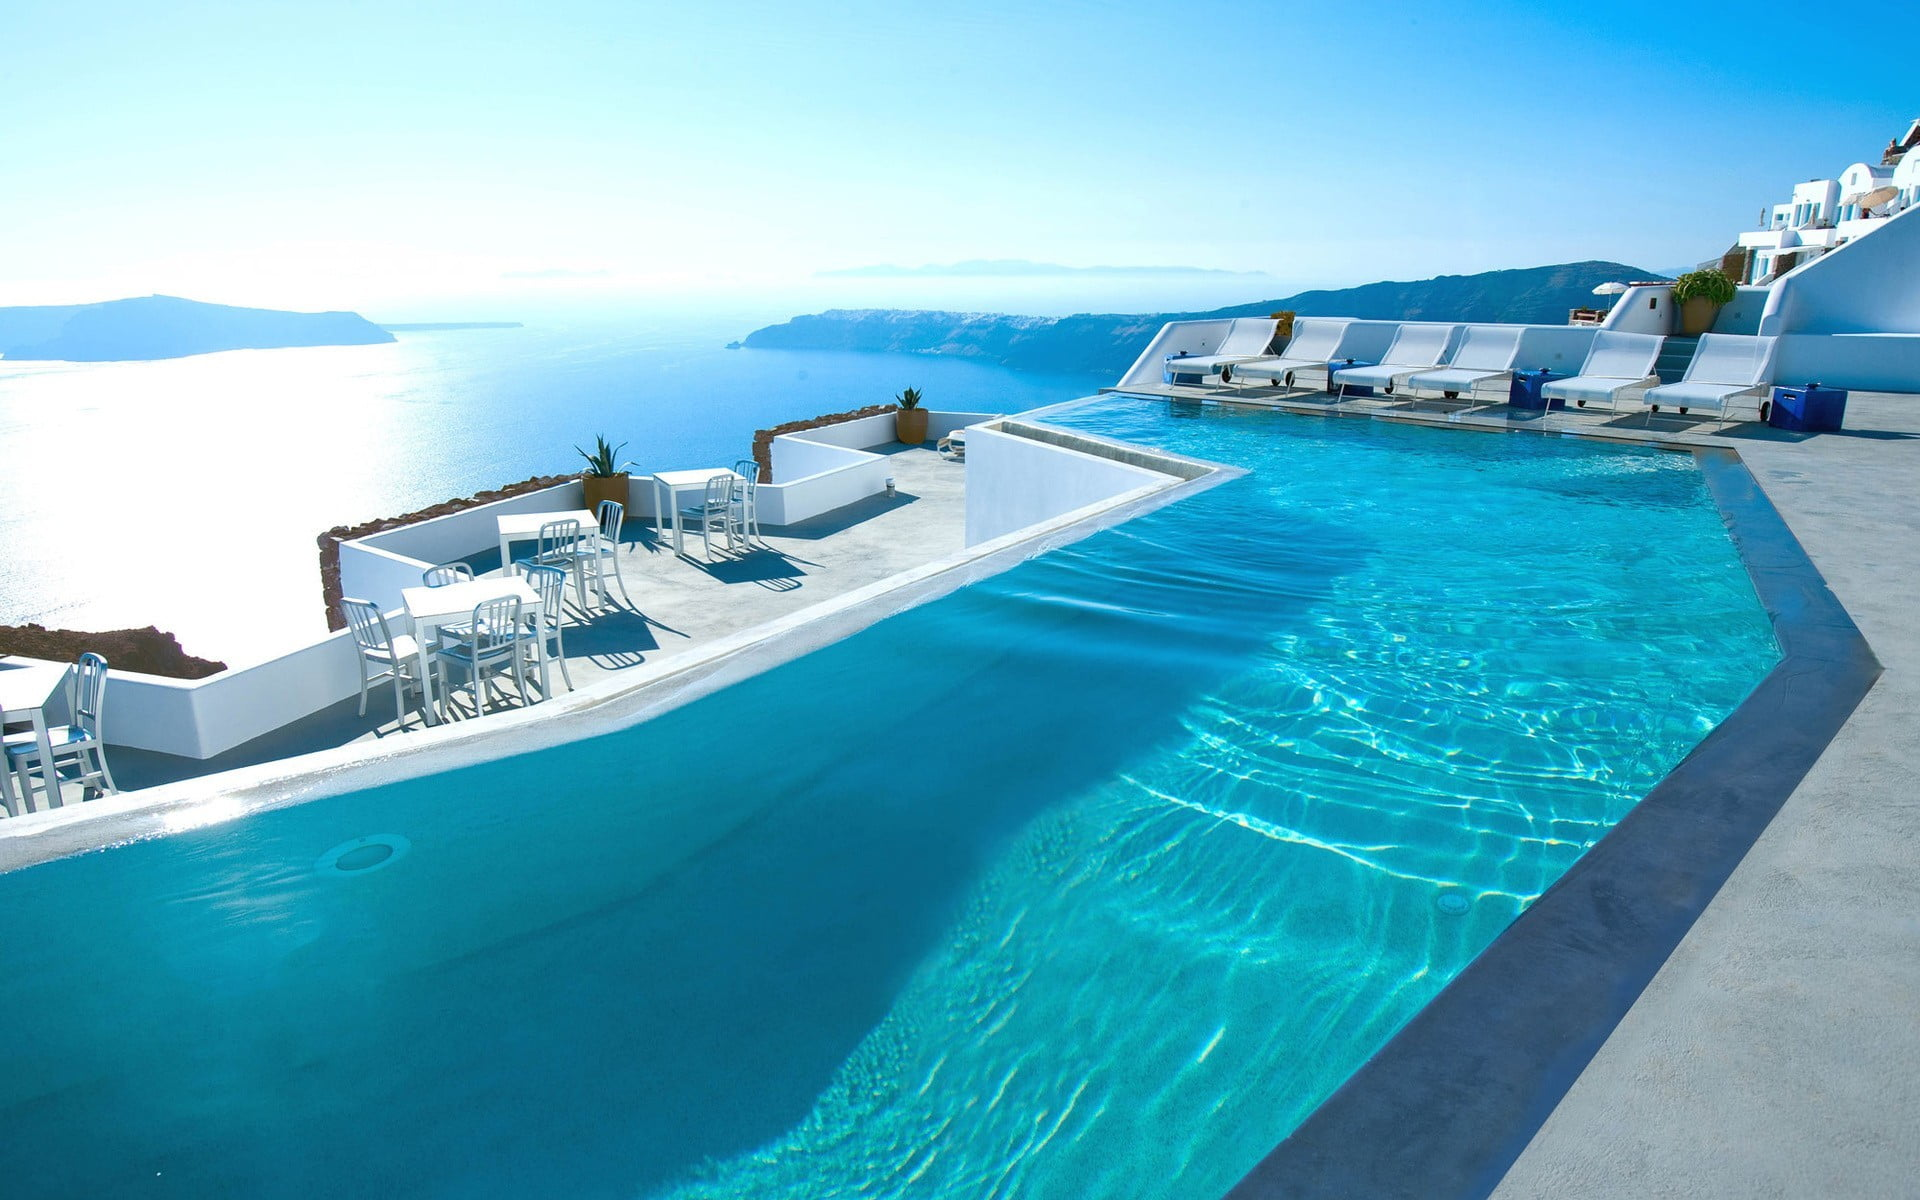 Swimming pool Greece Santorini hotel luxury HD wallpaper 1920x1200